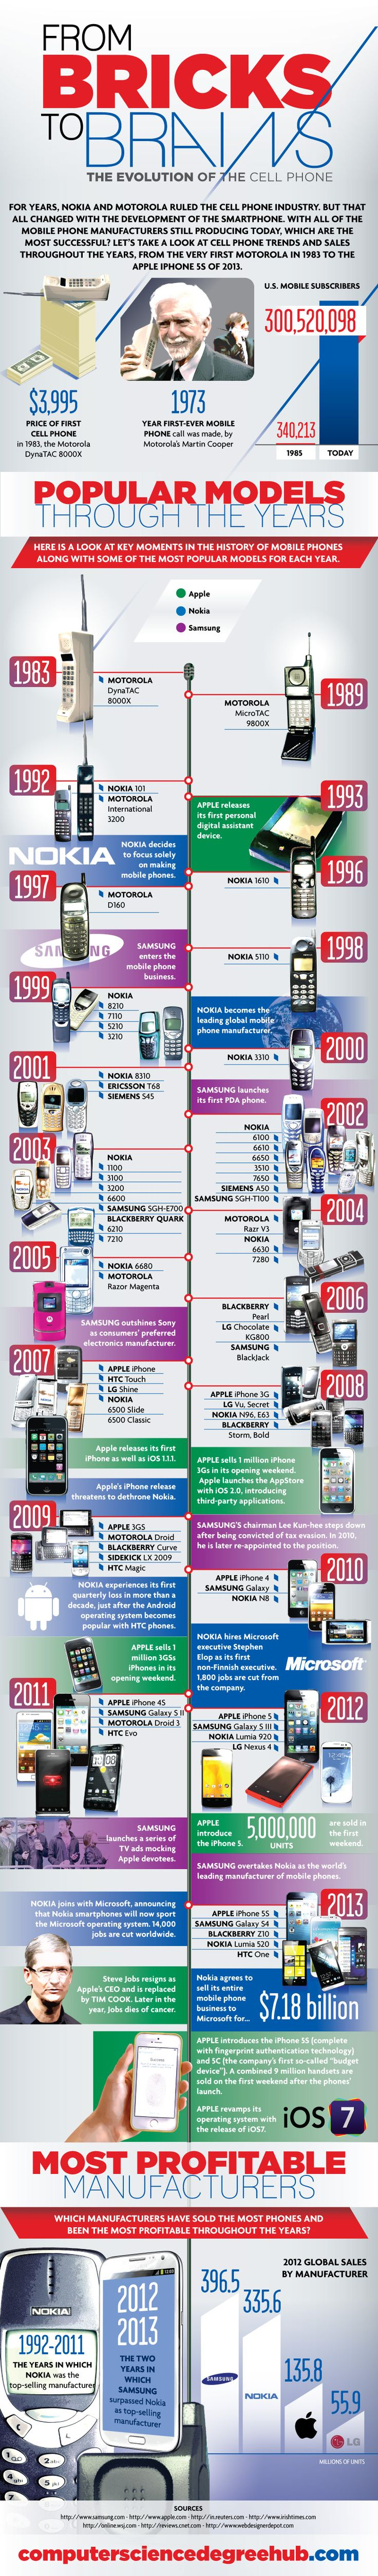 Bruce Sallan ‏@Bruce Sallan  The Evolution of the cell phone: From Bricks to Brains [Infographic] via @ibucketbot